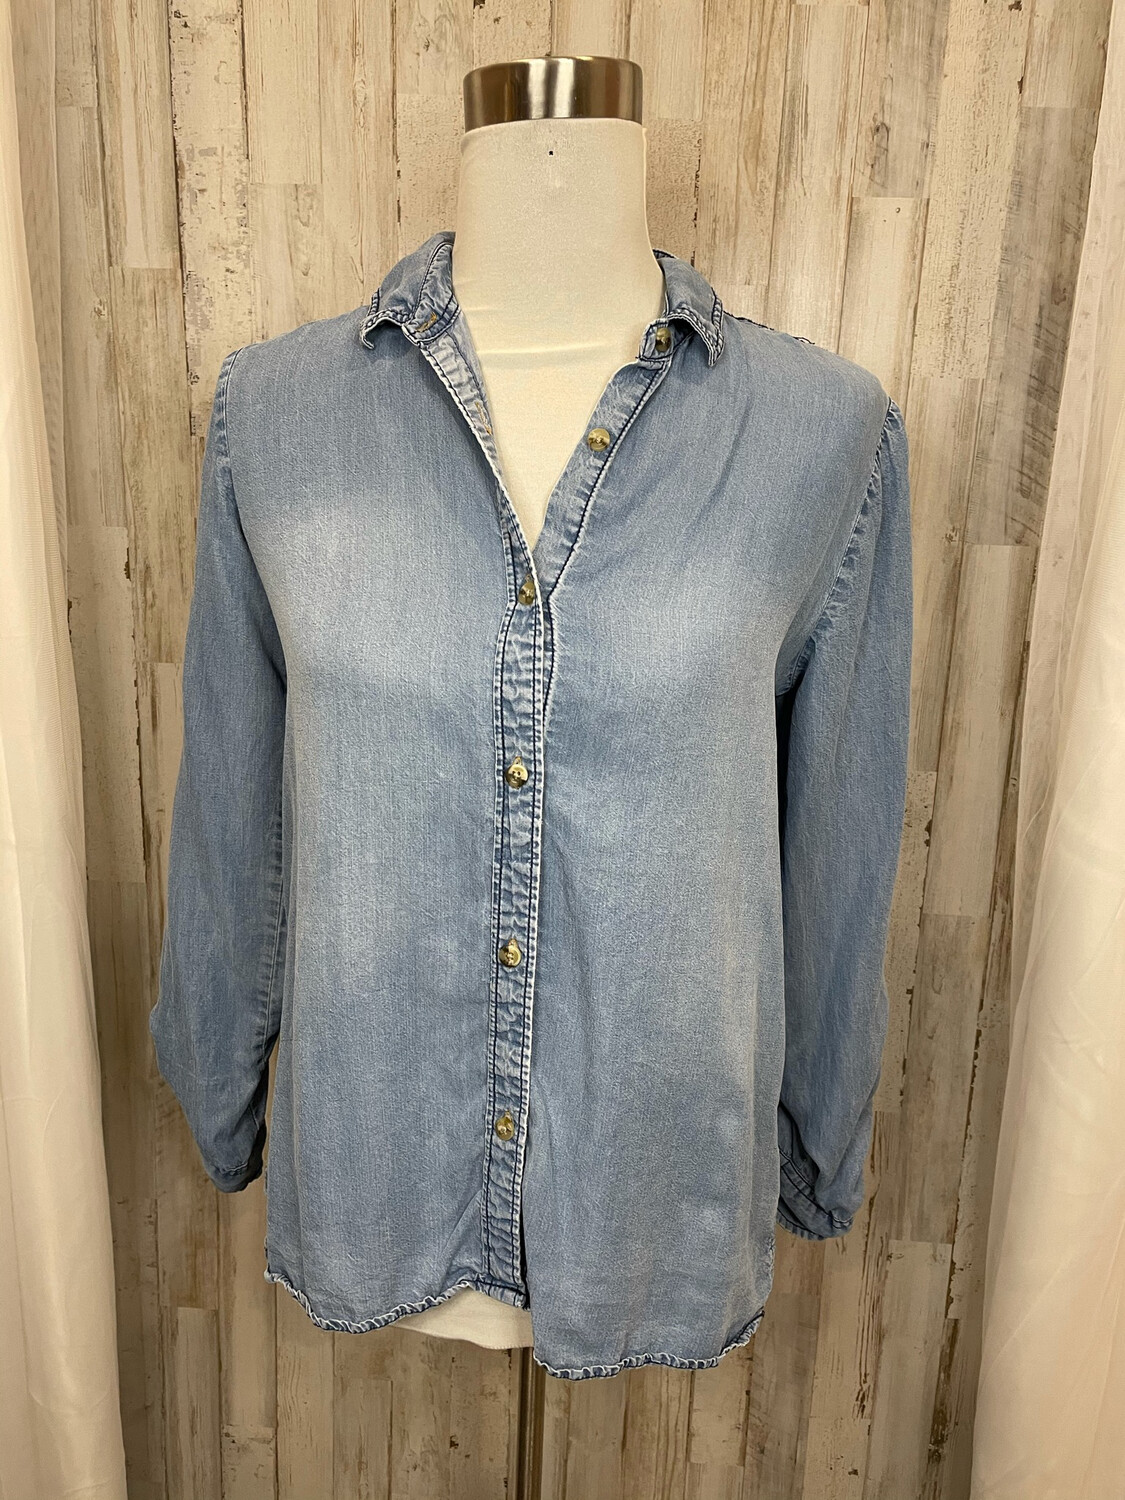 Buttons Chambray Button Up w/ Embroidered Shoulders - S